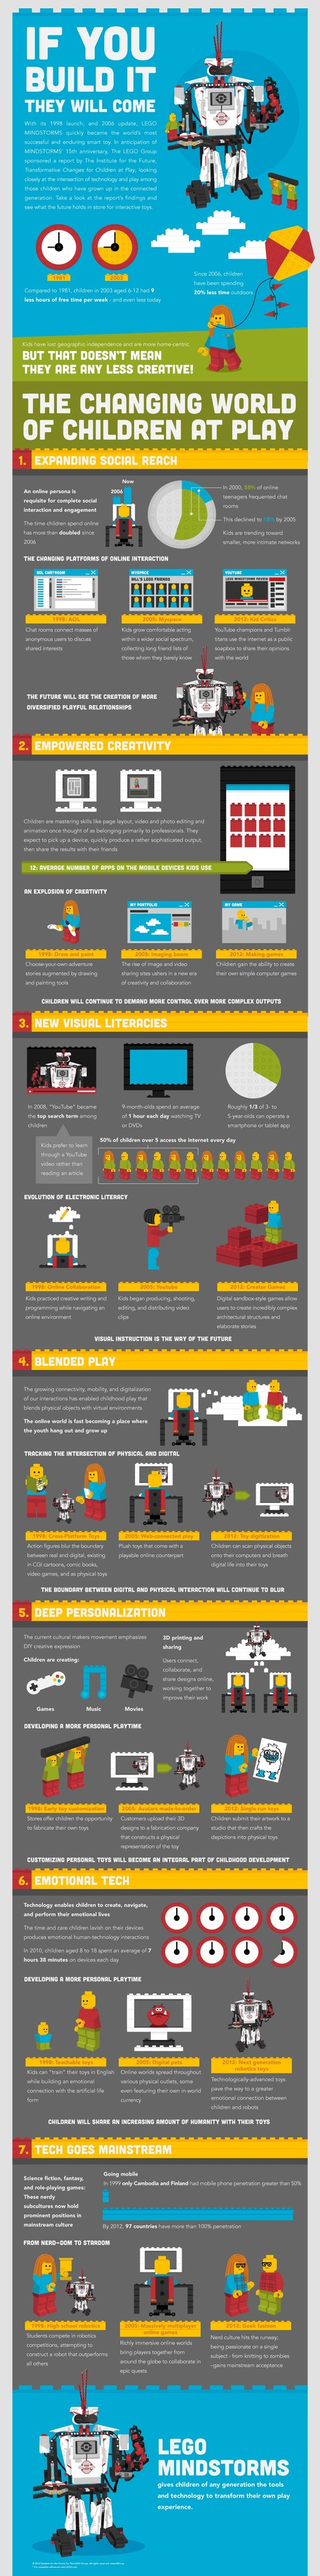 Let Children's Play (with Technology) Be Their Work in Education [Infographic] | Symetrix | Scoop.it